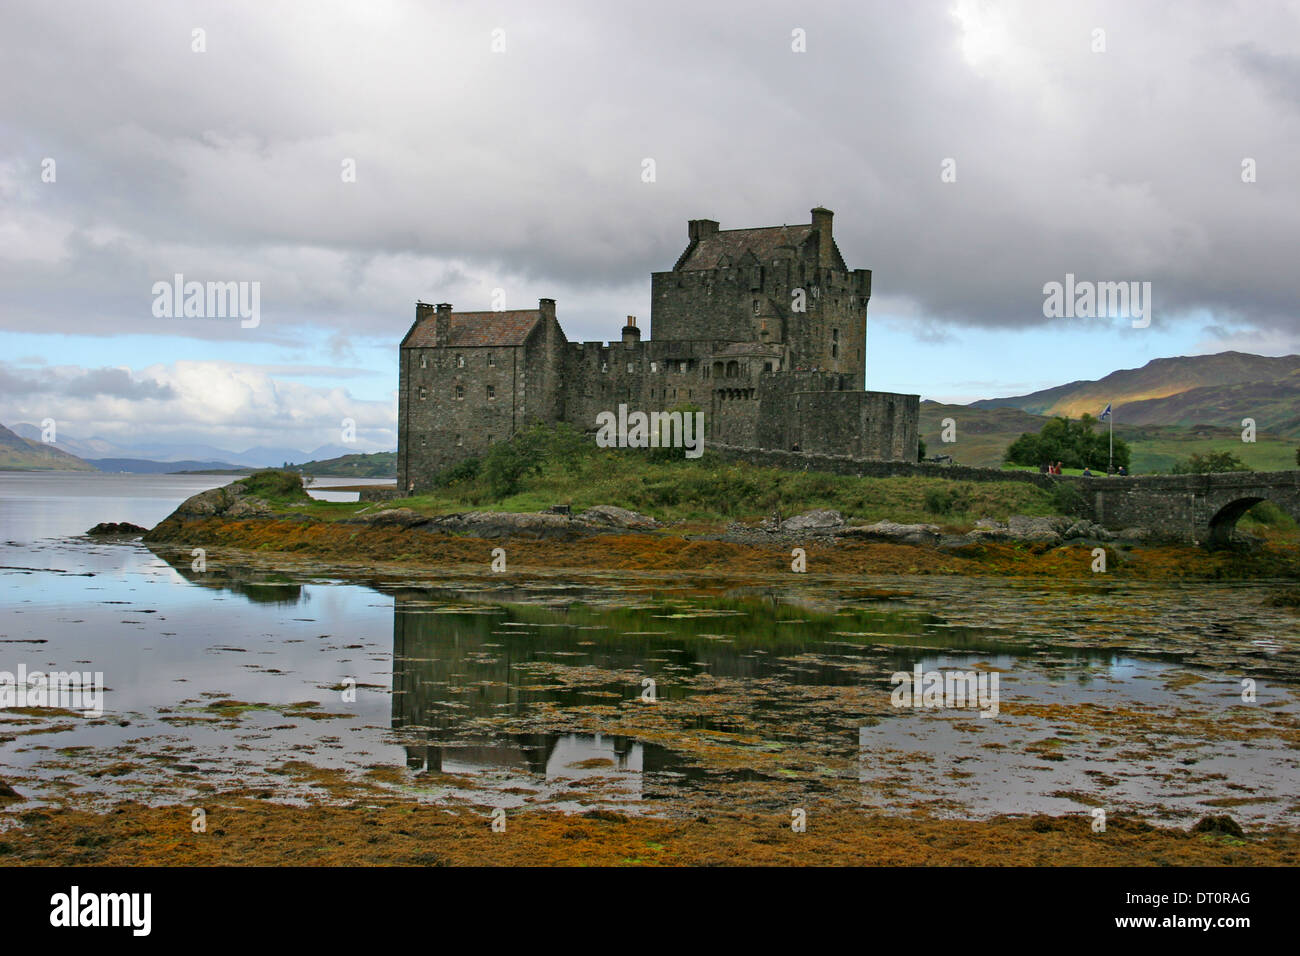 Eilean Donan Castle at Dornie, Kyle of Lochalsh, Braveheart Film Location, Western  Highlands of Scotland.UK - Stock Image